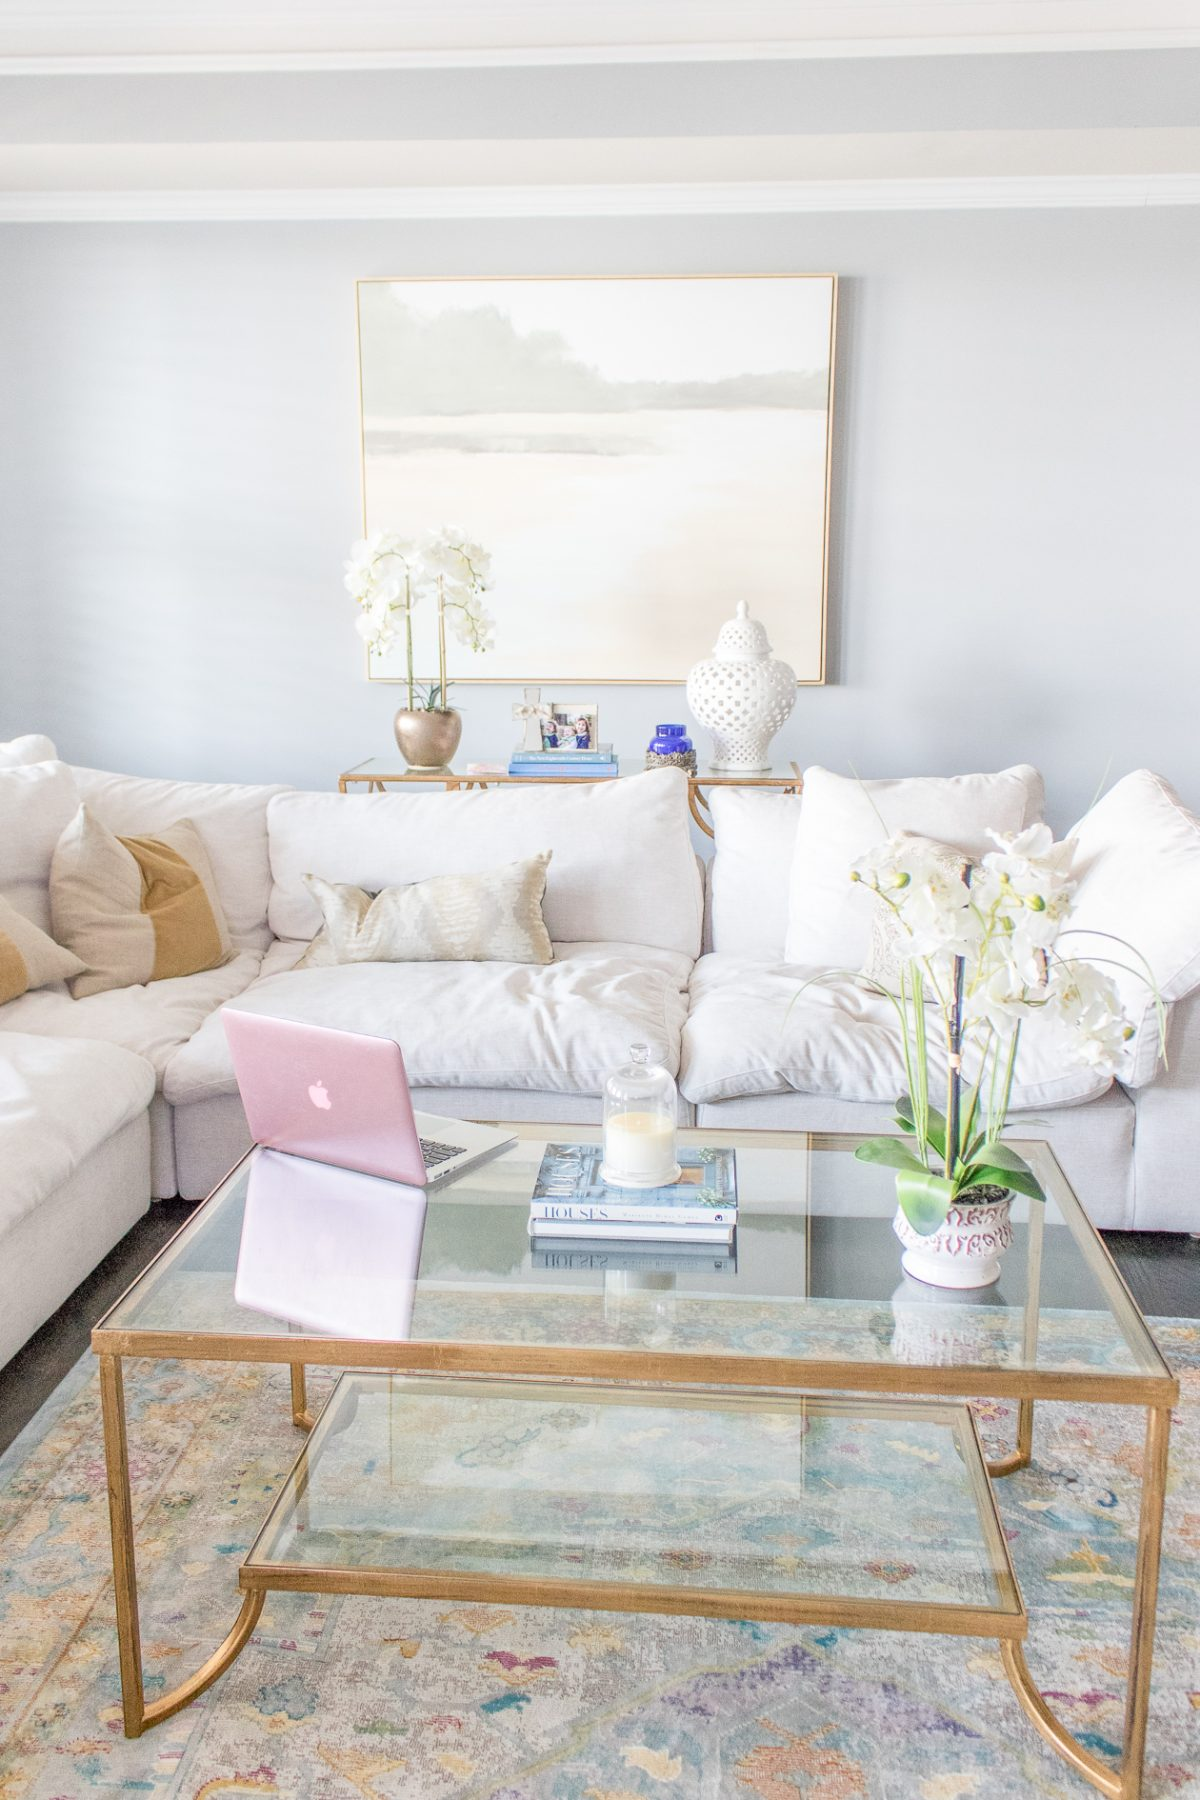 Gray living room with large white couch, glass coffee table, pink Macbook Air, fresh white orchids